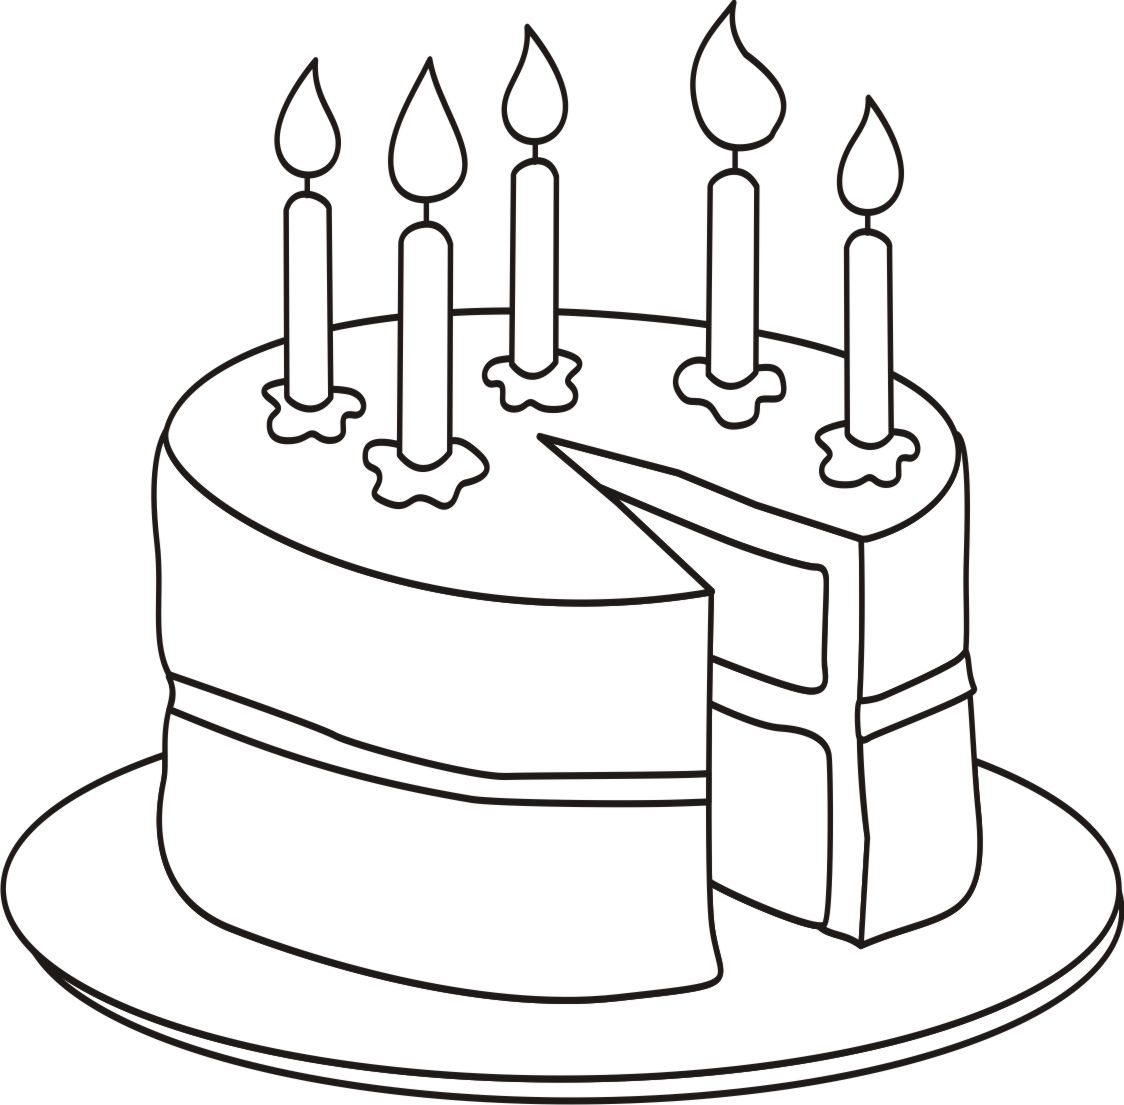 How To Draw Cowboy Boots moreover In The Loving Care Of Her Mom Coloring Page 1d1737 additionally Mini Muffin Shopkin furthermore Shopkins Season 7 Coloring Pages in addition Elmo Coloring Pages. on cartoon birthday cake